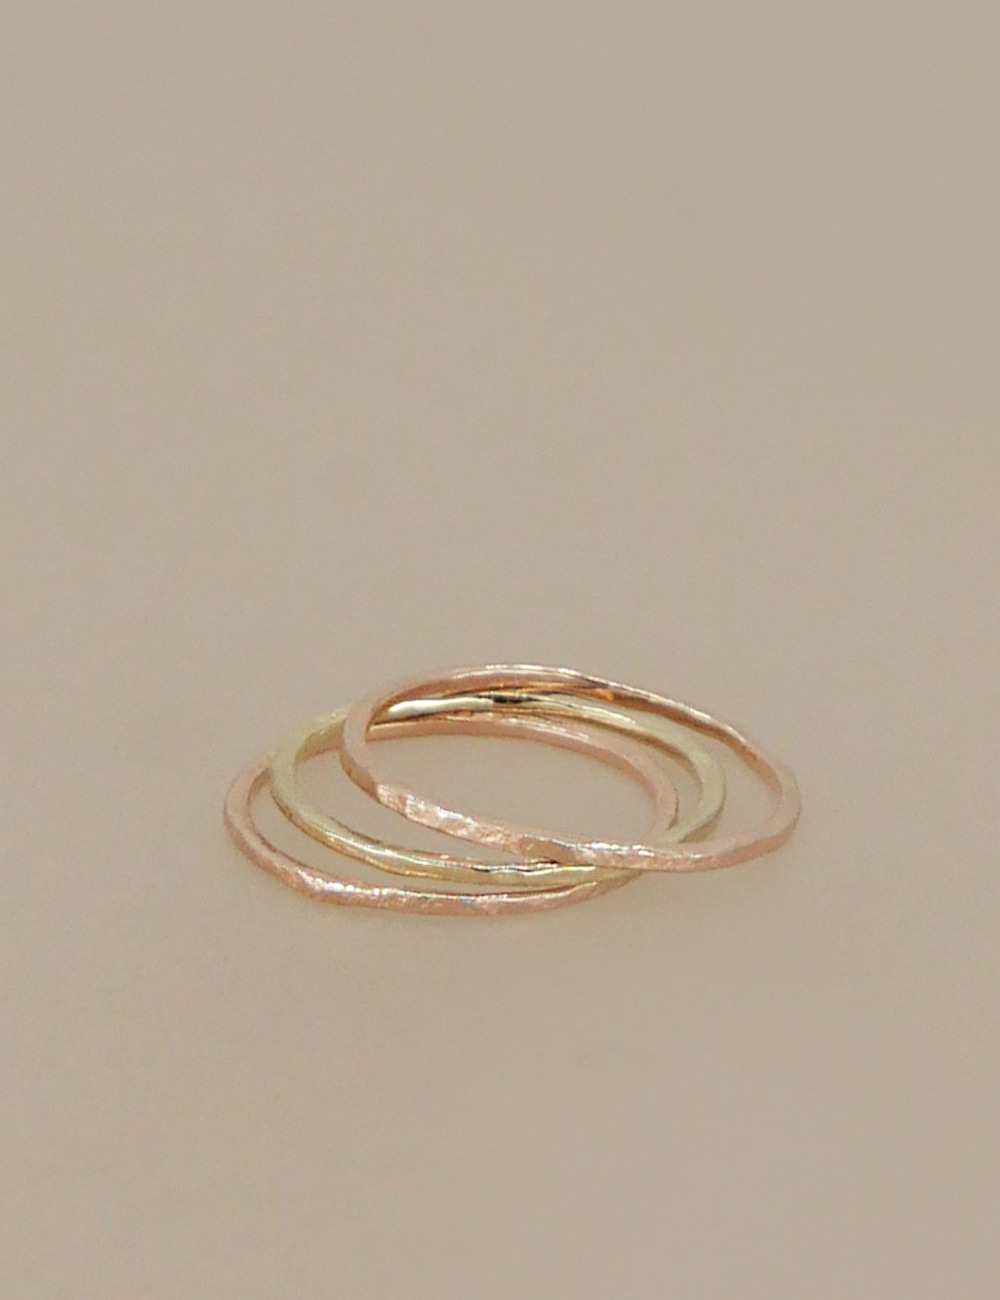 [Fine Jewelry] 14-karat Gold Textured Thin Ring